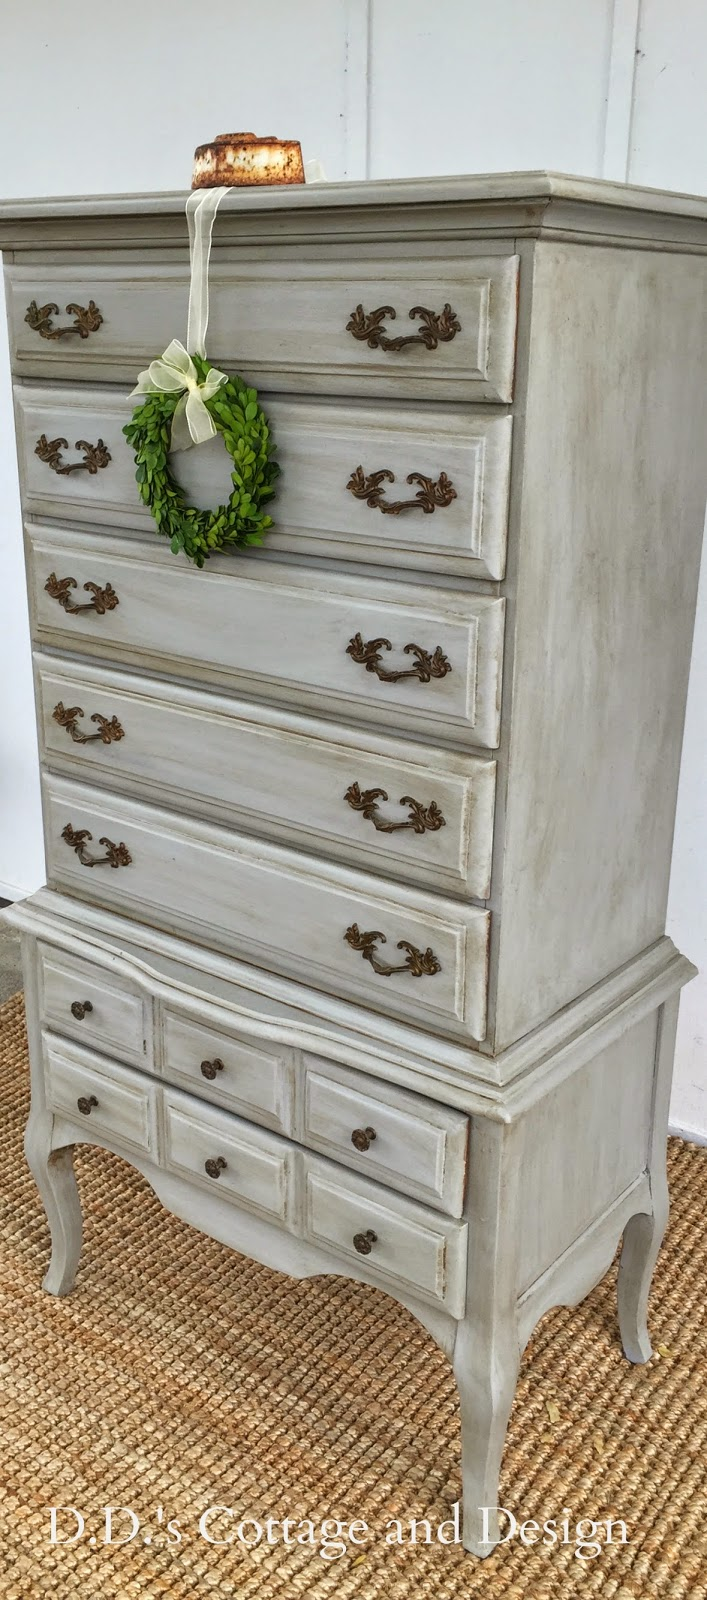 d d 39 s cottage and design grey french provincial chest on chest. Black Bedroom Furniture Sets. Home Design Ideas